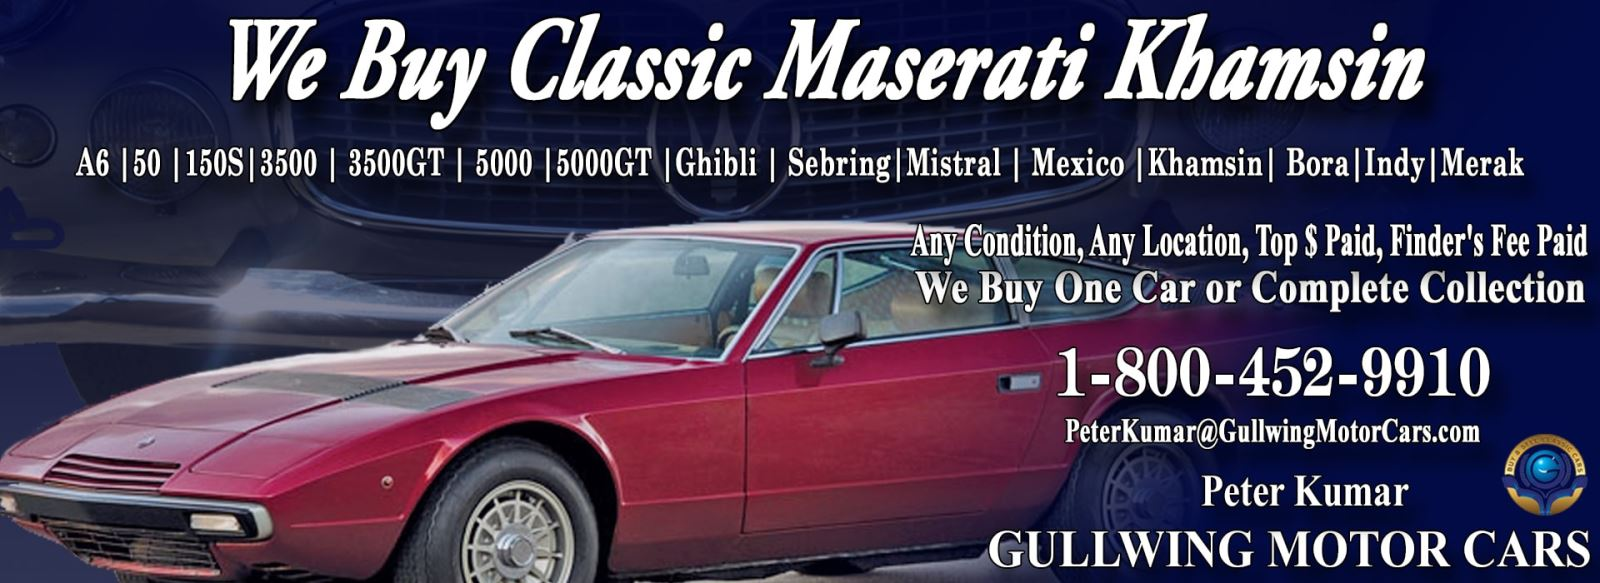 Classic Maserati Khamsin for sale, we buy vintage Maserati Khamsin. Call Peter Kumar. Gullwing Motor